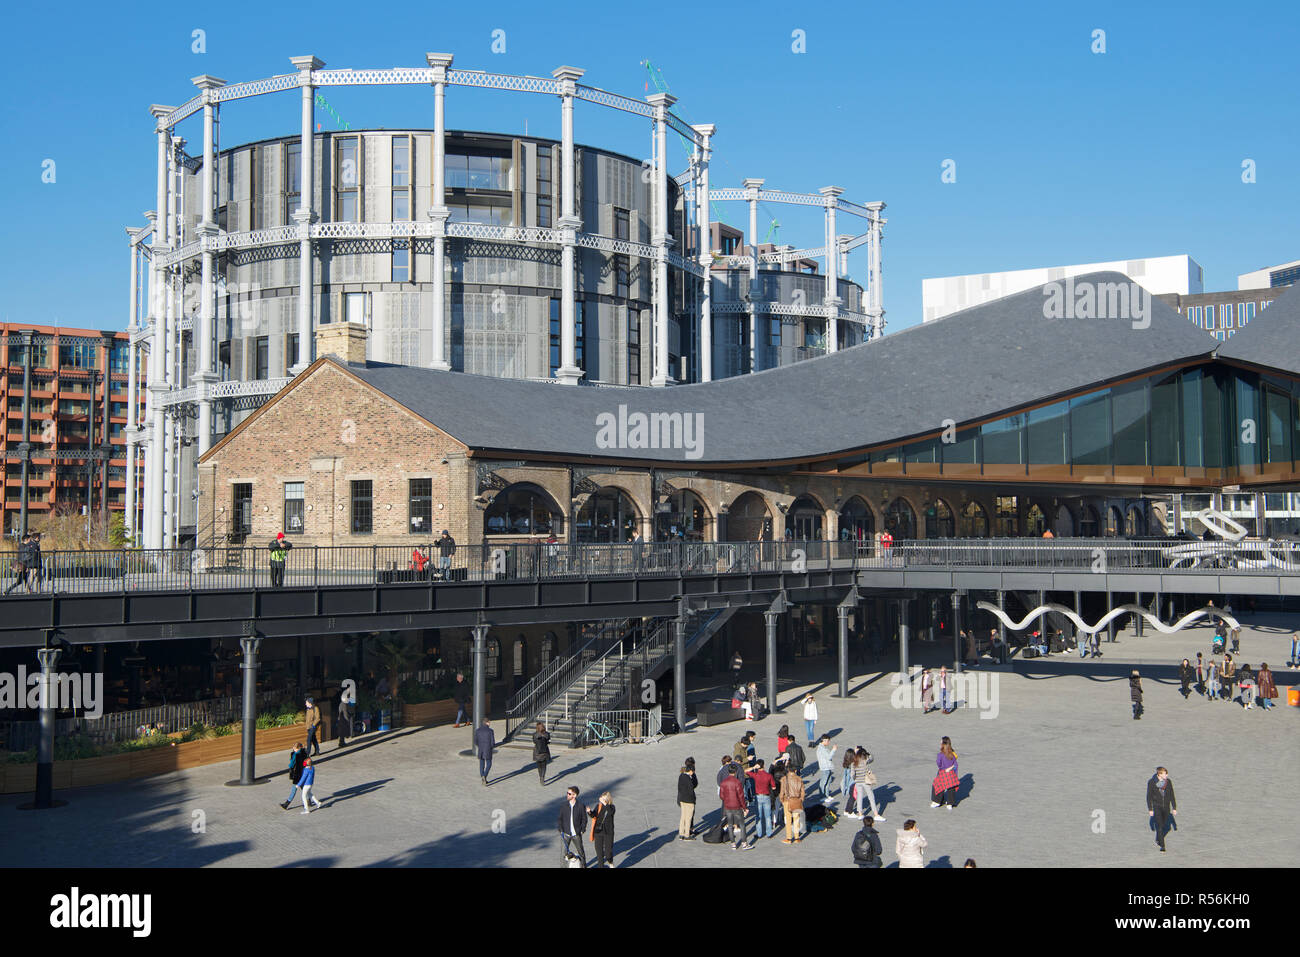 Coal Drops Yard modern development with converted luxury apartments from Victorian gas holders behind Kings Cross London England - Stock Image